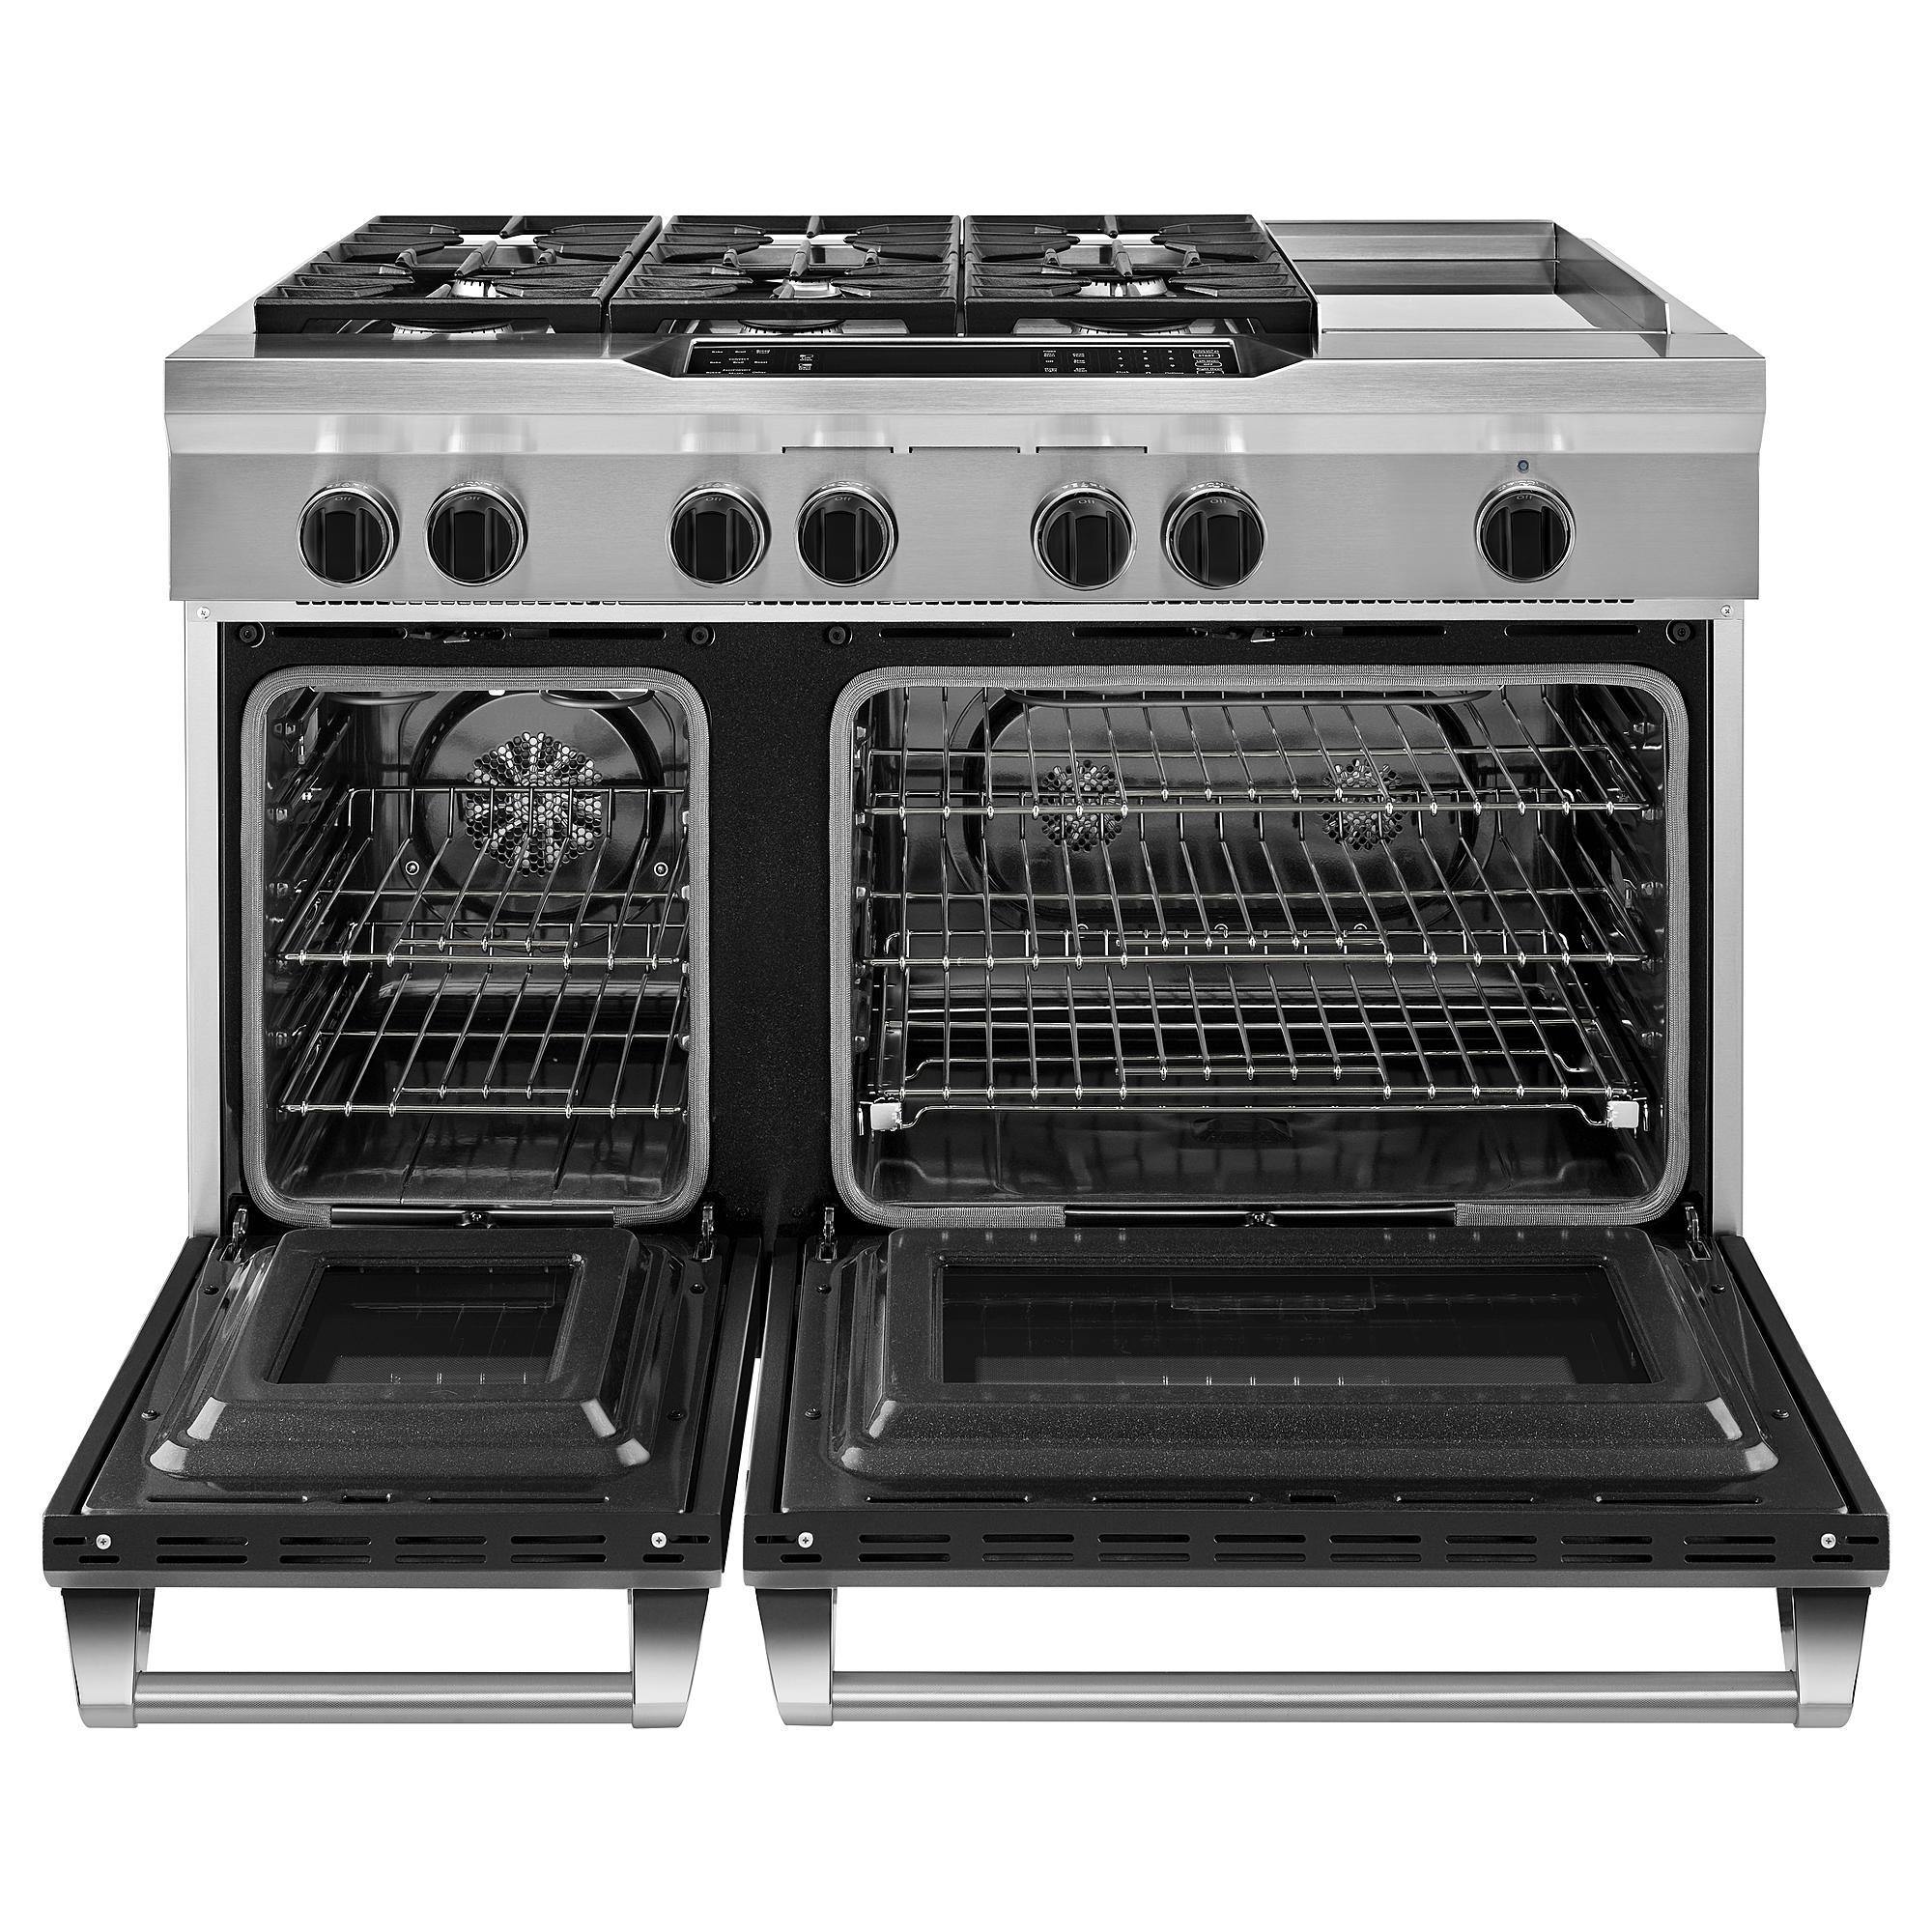 Kitchenaid Kdrs483vss 48 Inch 6 Burner Dual Fuel